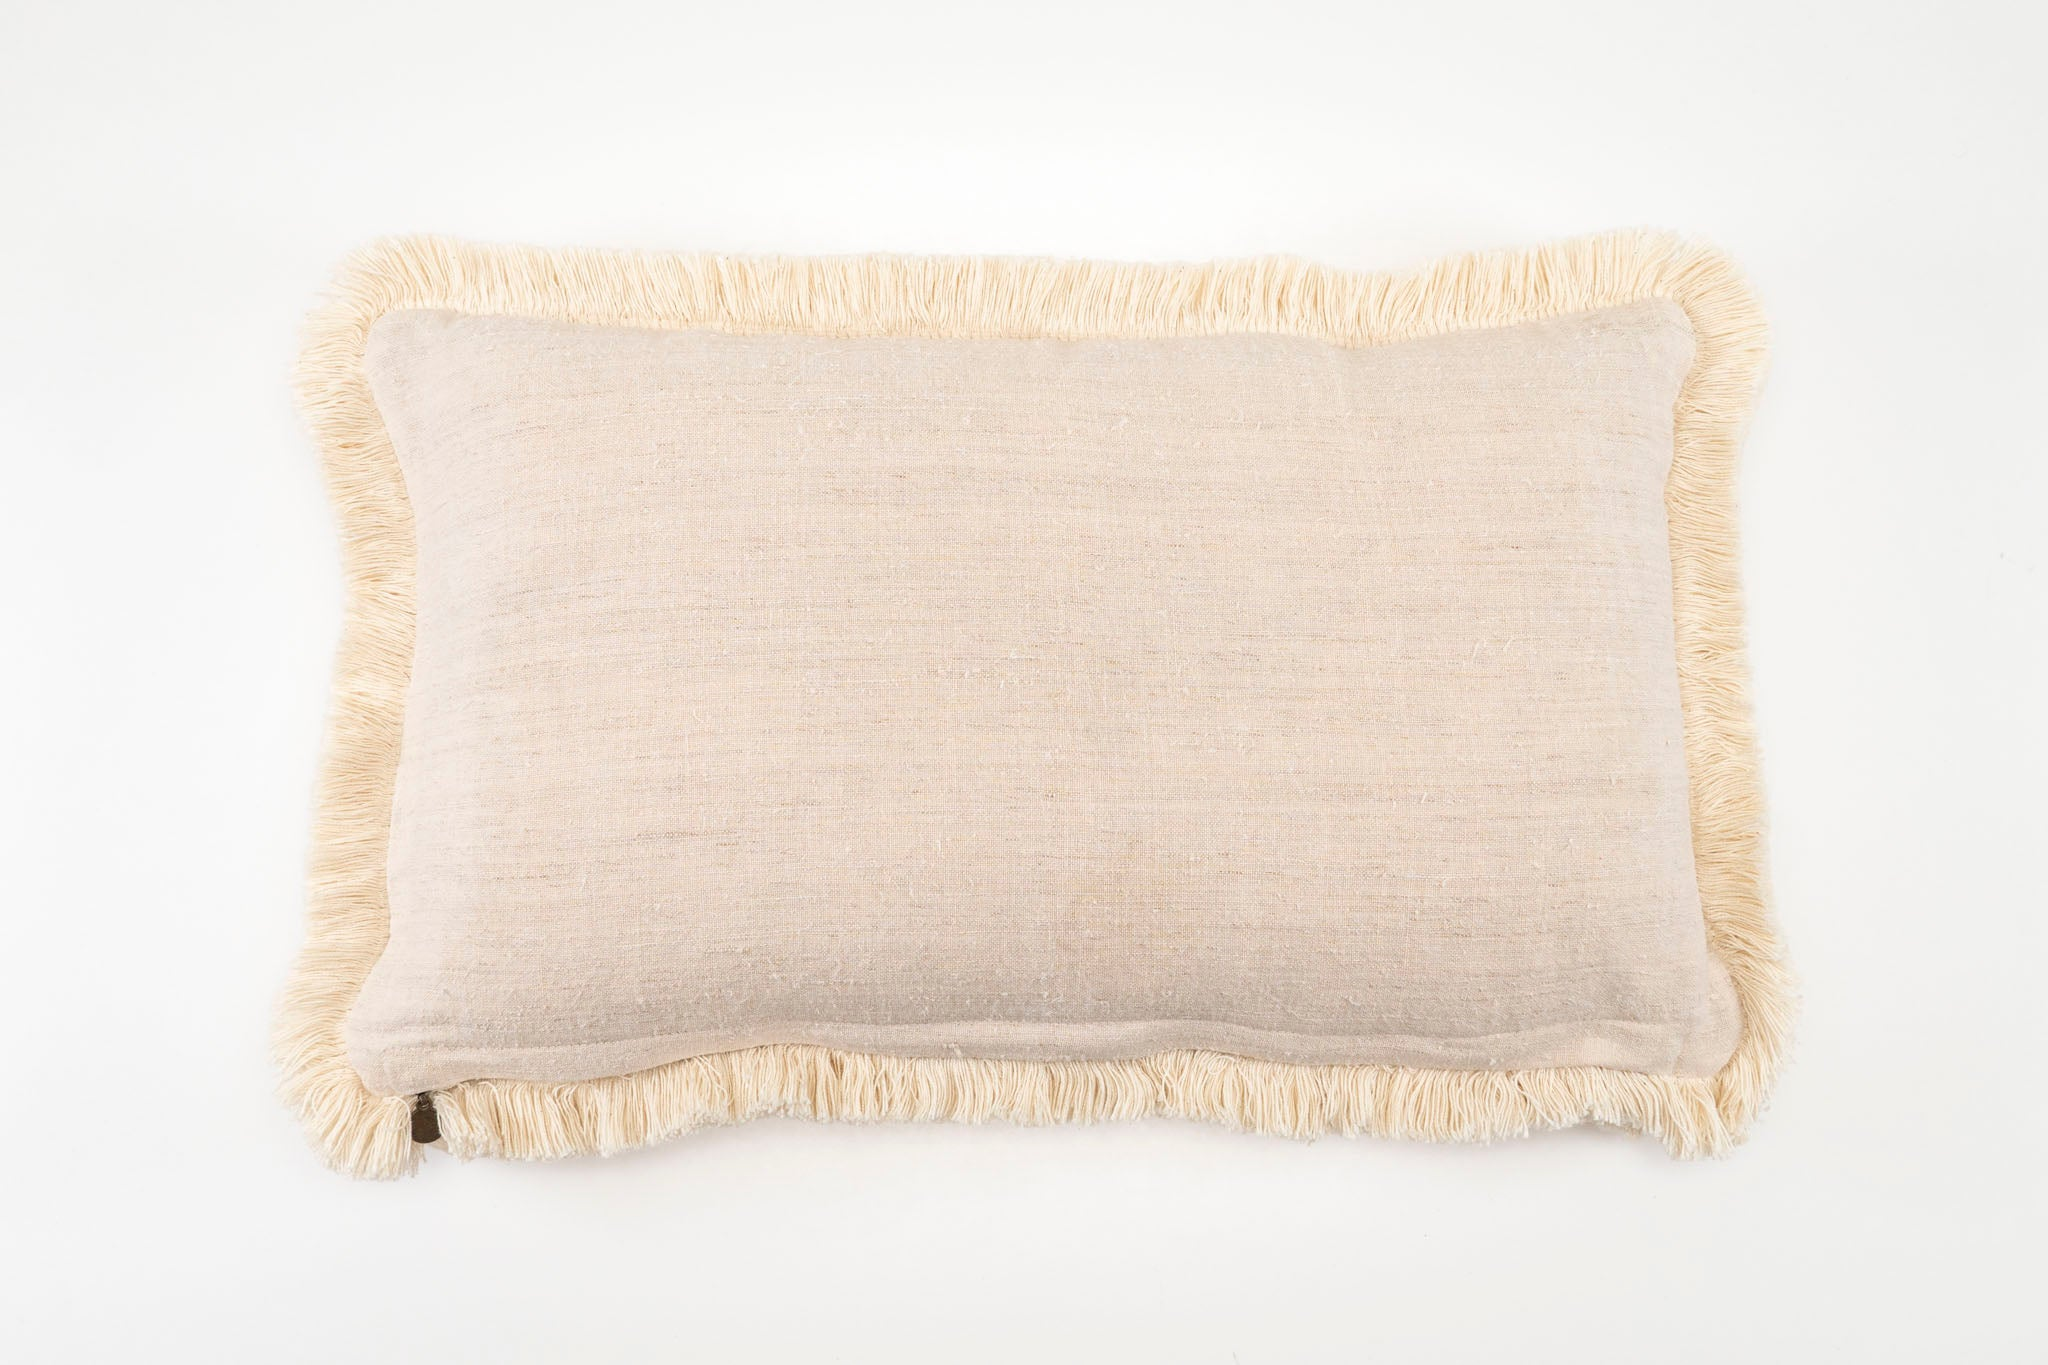 Pillow: Handwoven antique Hungarian hemp